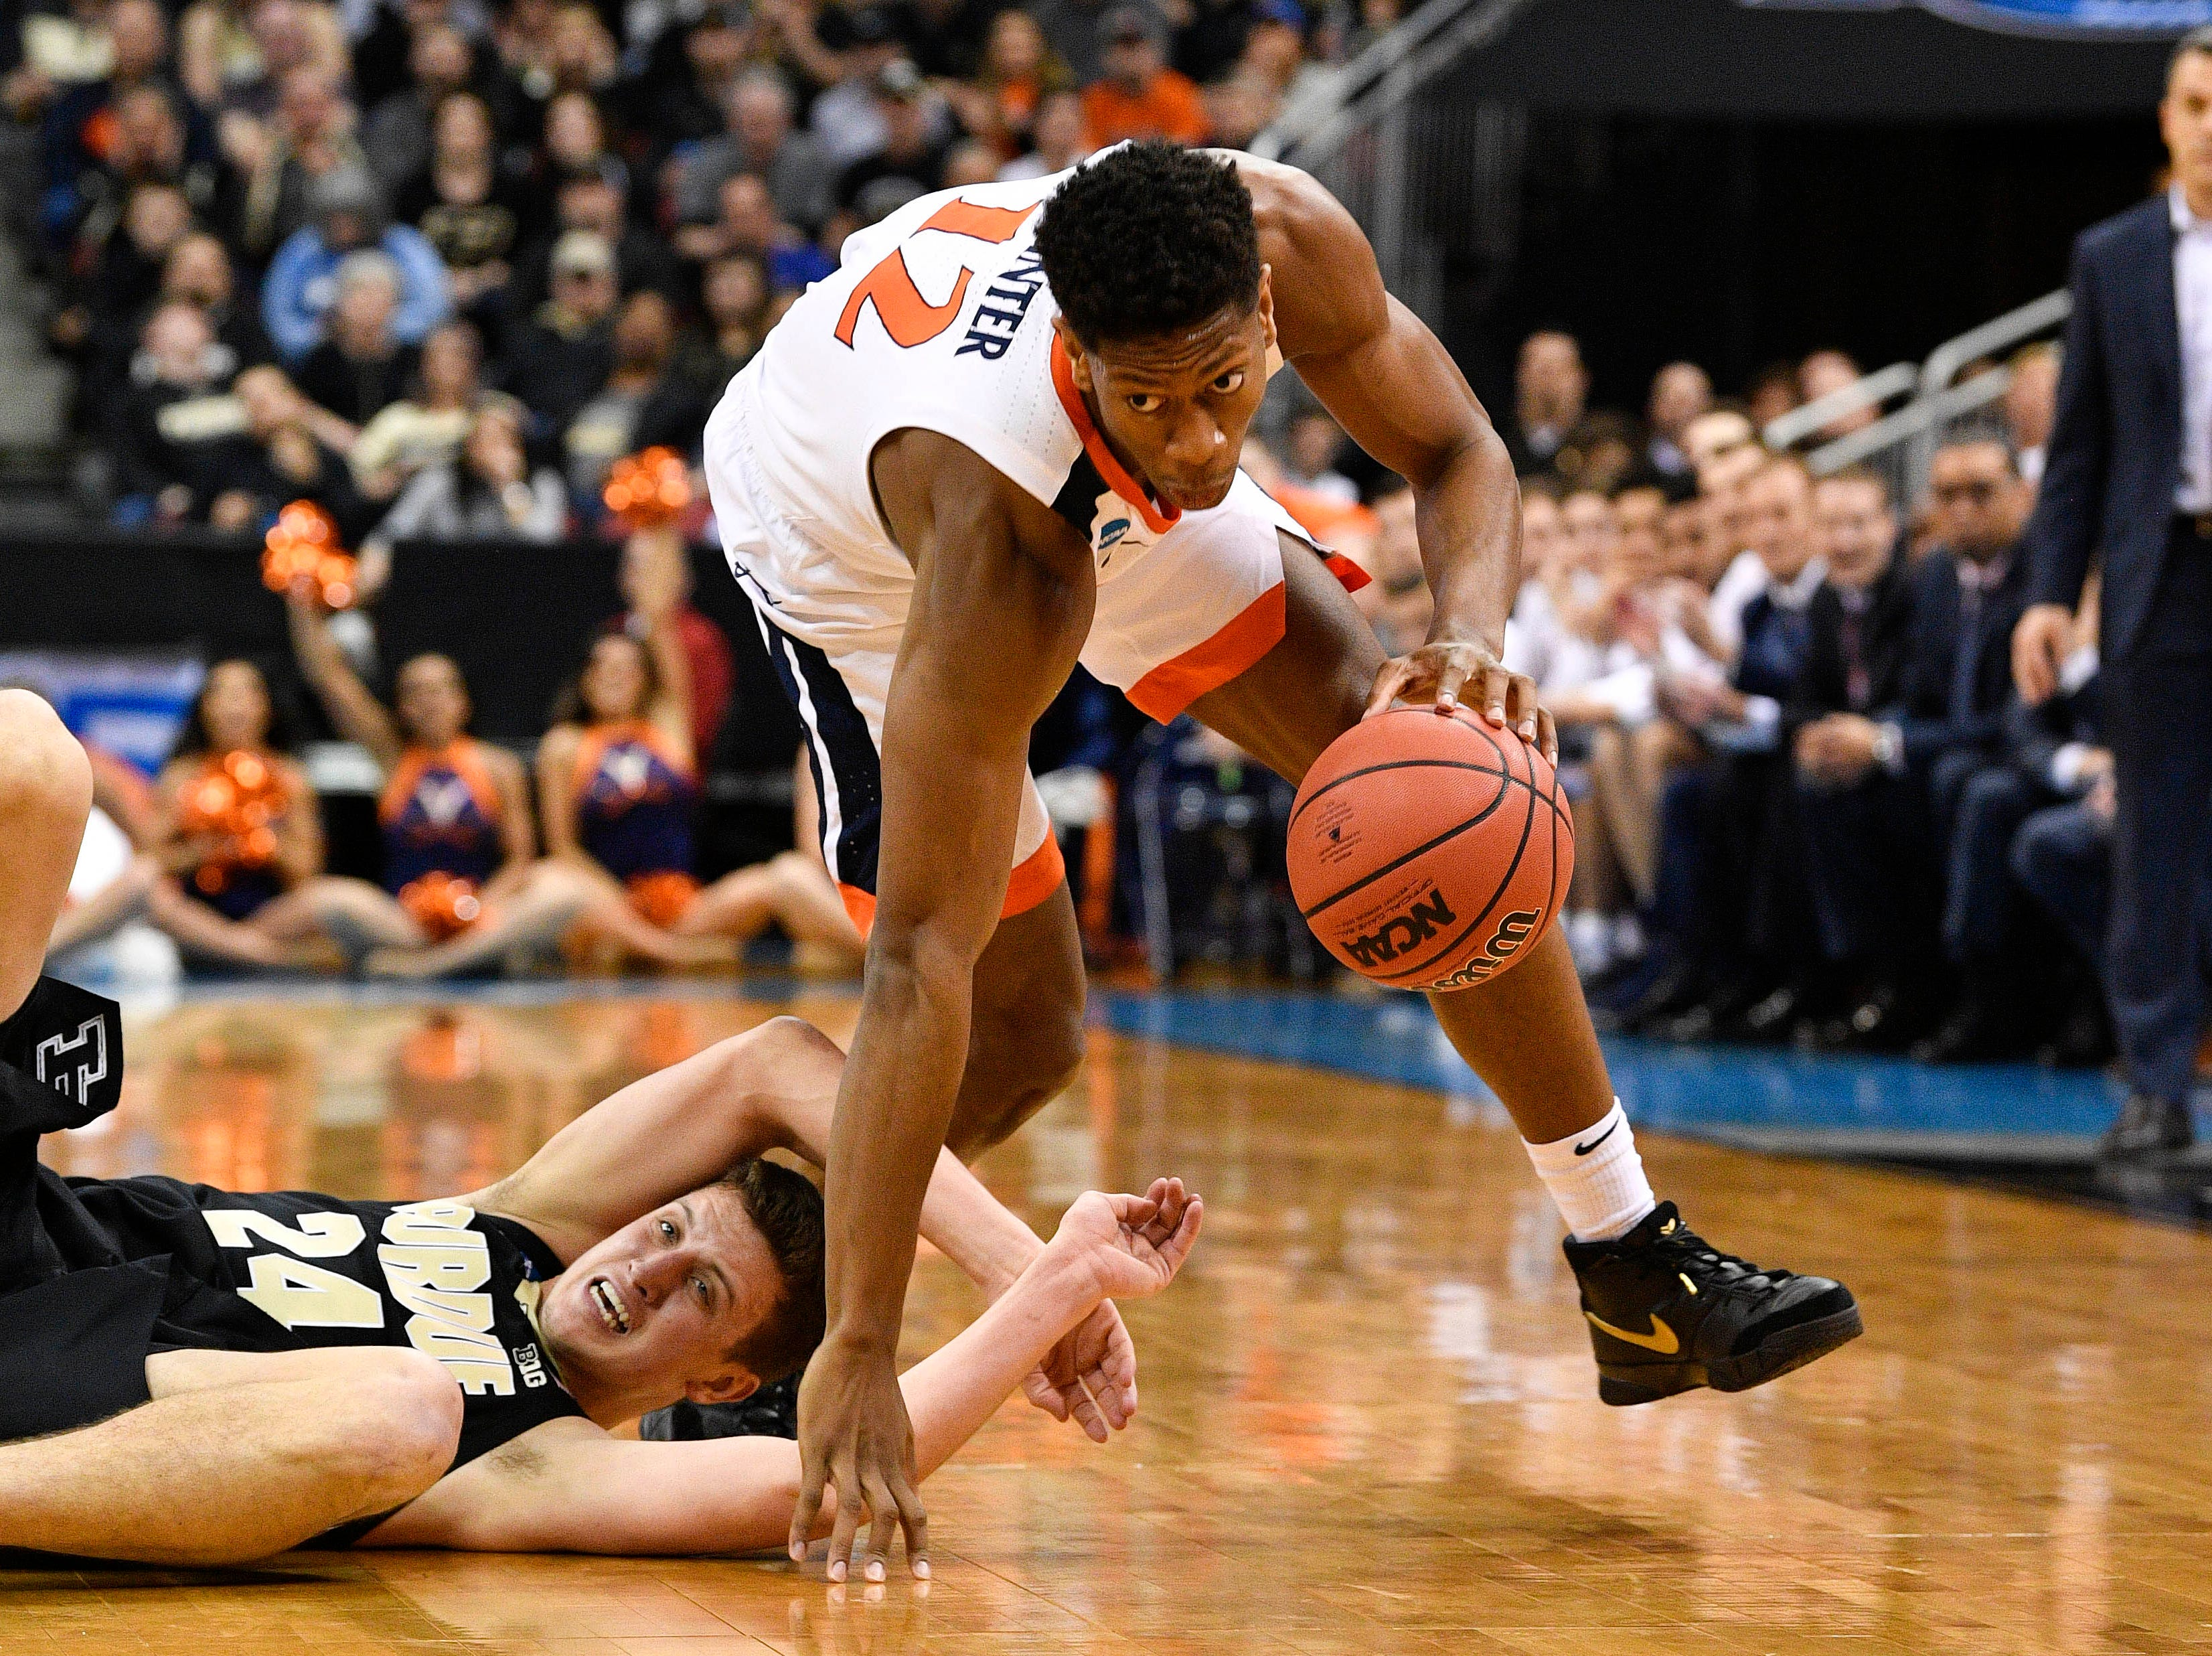 Mar 30, 2019; Louisville, KY, United States; Virginia Cavaliers guard De'Andre Hunter (12) dribbles over Purdue Boilermakers forward Grady Eifert (24) during the first half in the championship game of the south regional of the 2019 NCAA Tournament at KFC Yum Center. Mandatory Credit: Jamie Rhodes-USA TODAY Sports